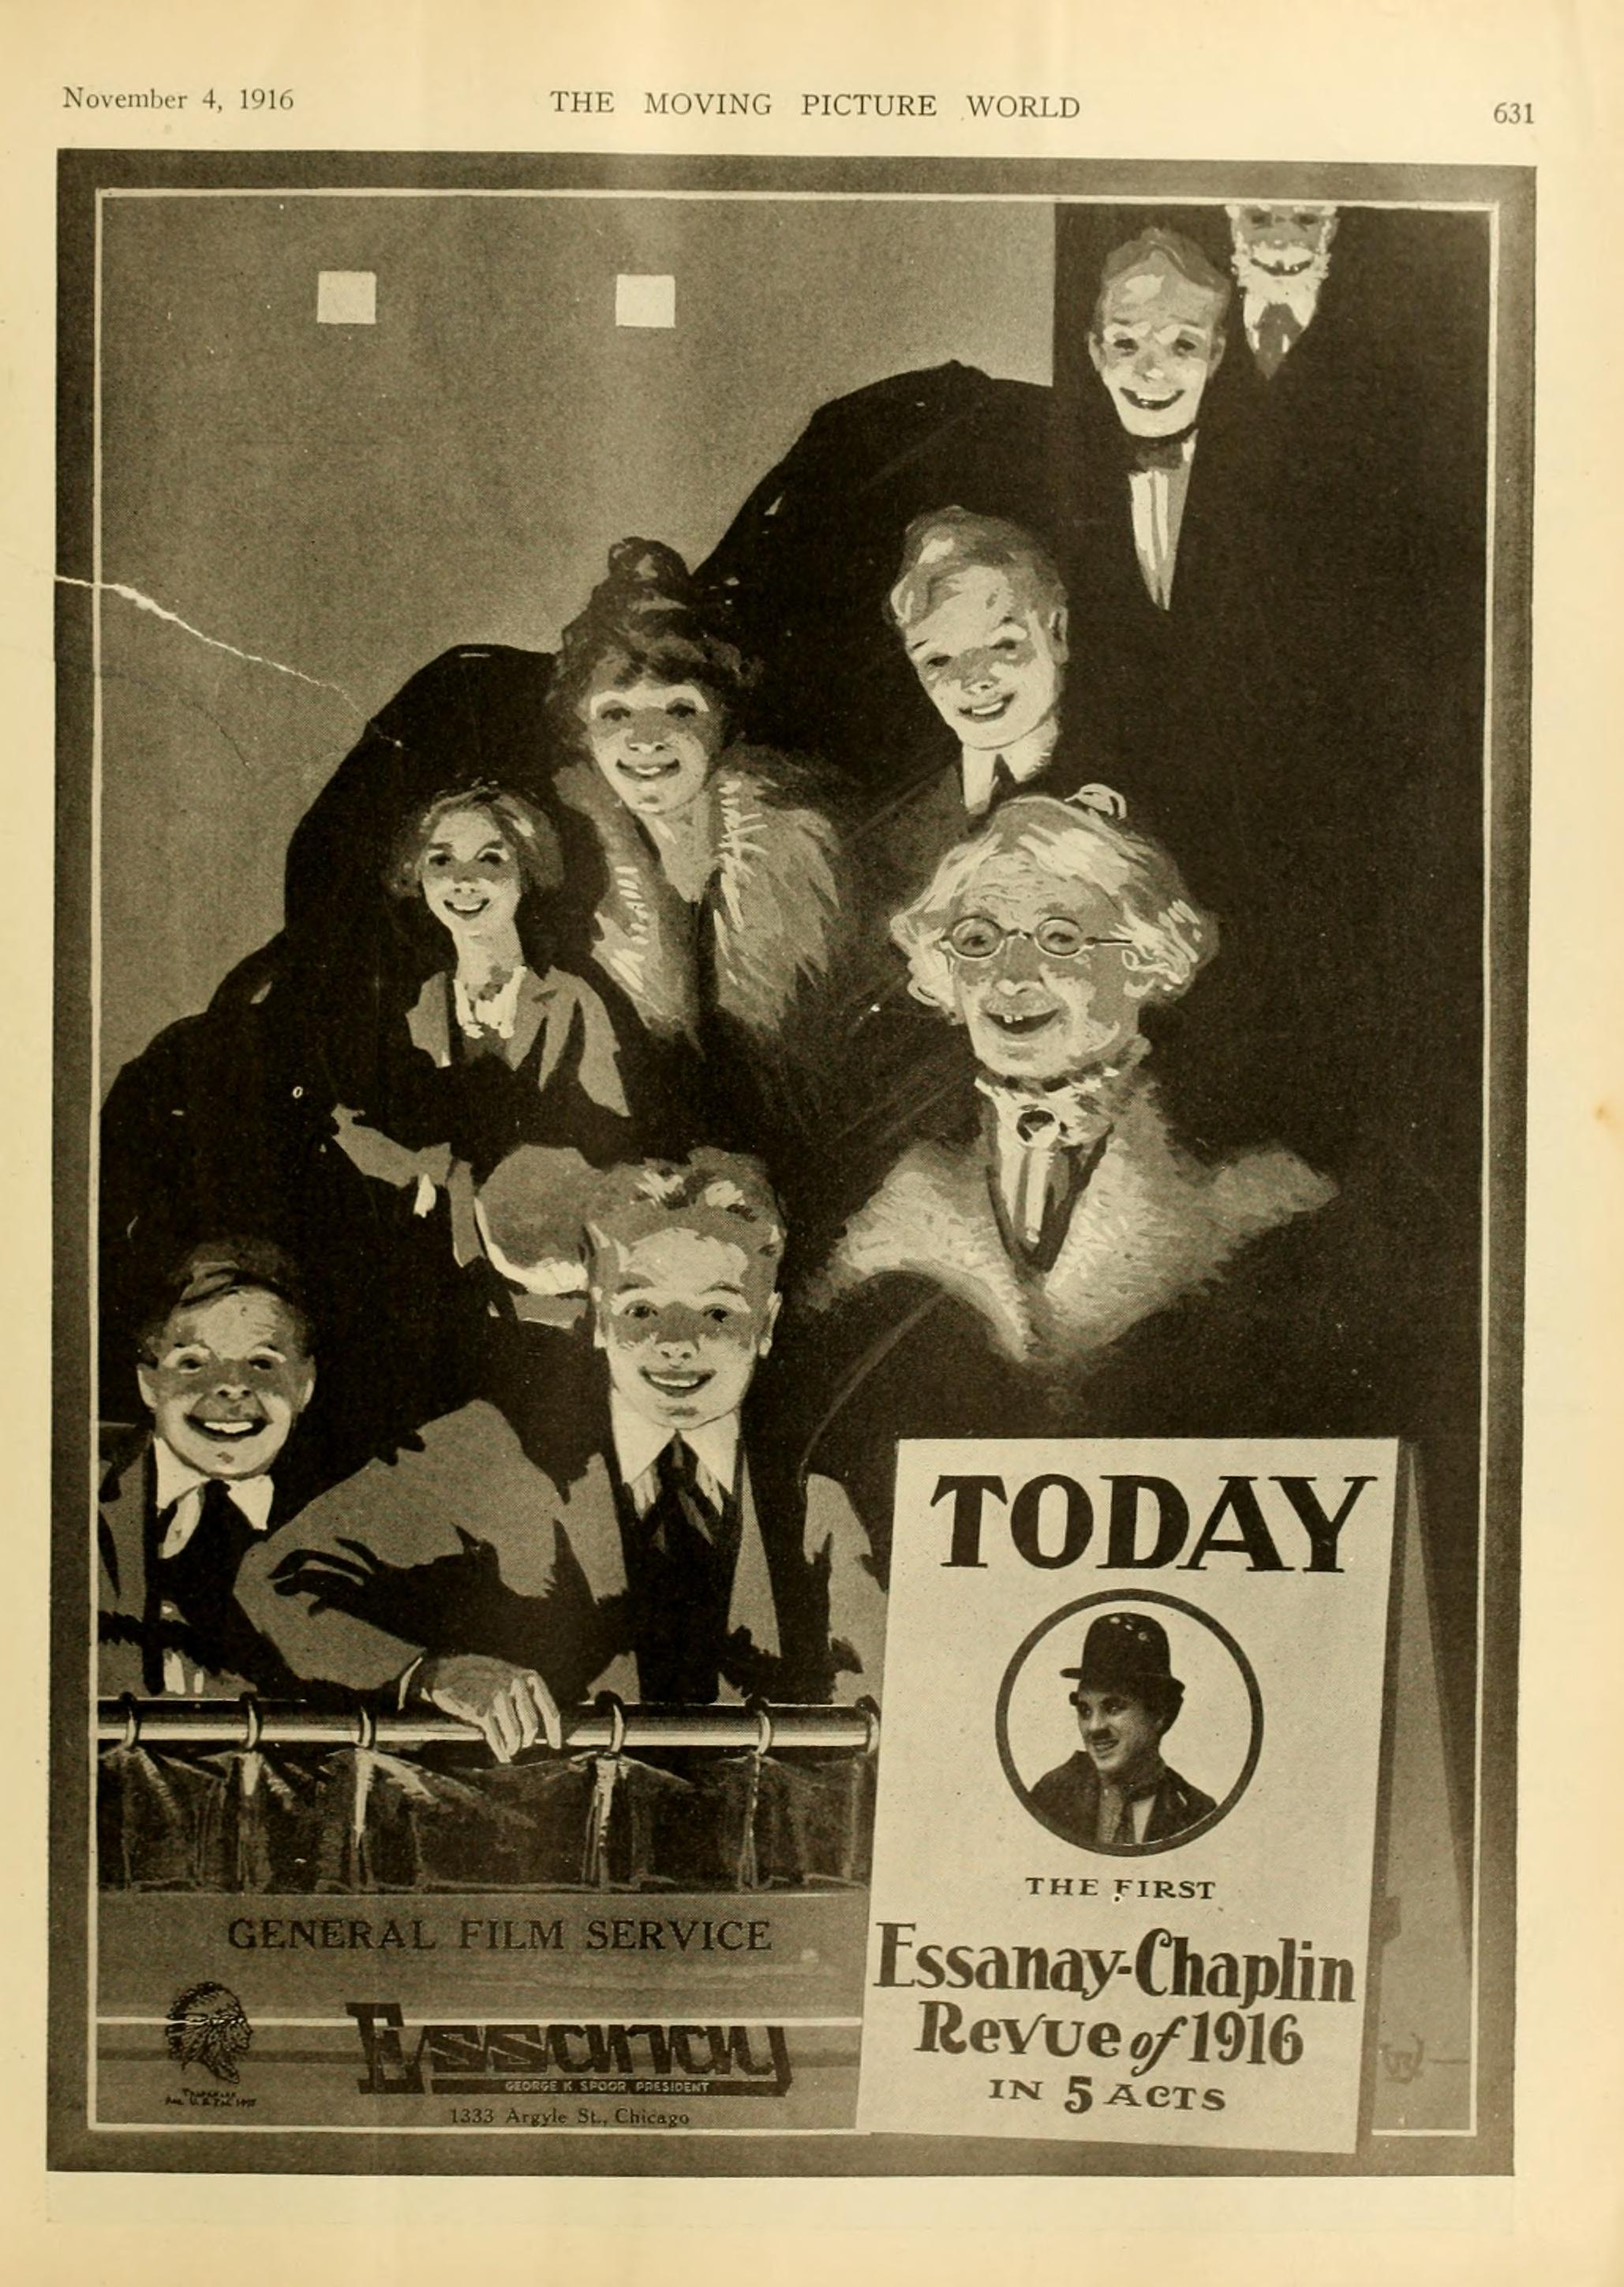 The Essanay-Chaplin Revue of 1916, Moving Picture World magazine, Nov 4, p.631